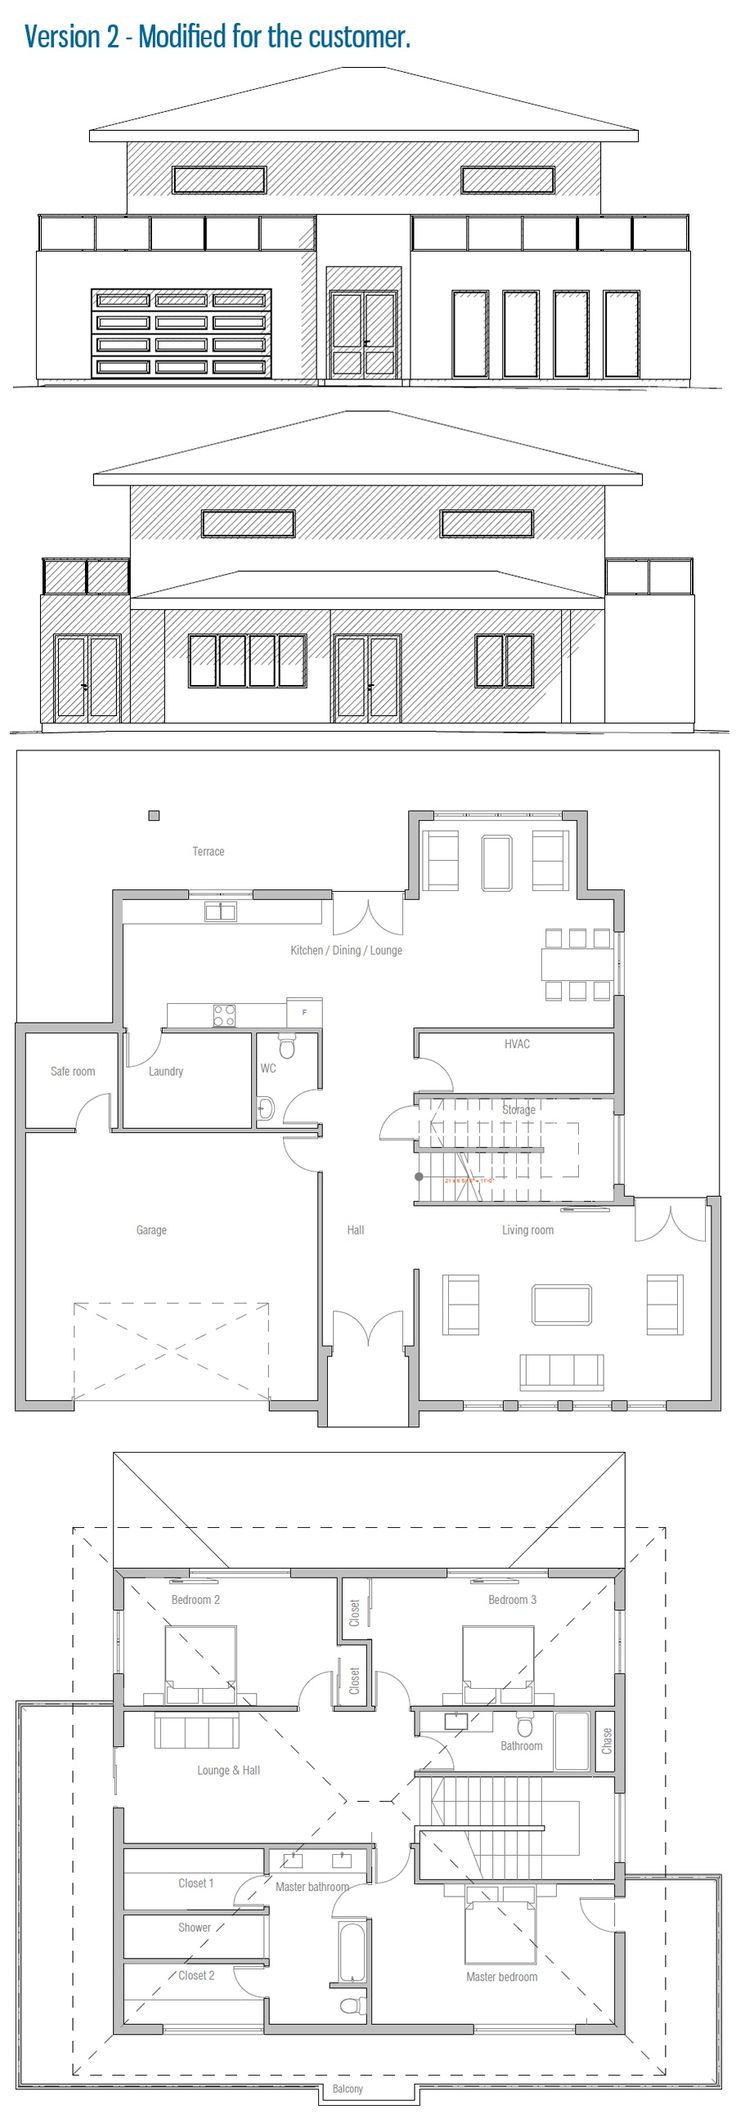 Modified House / Home Plan